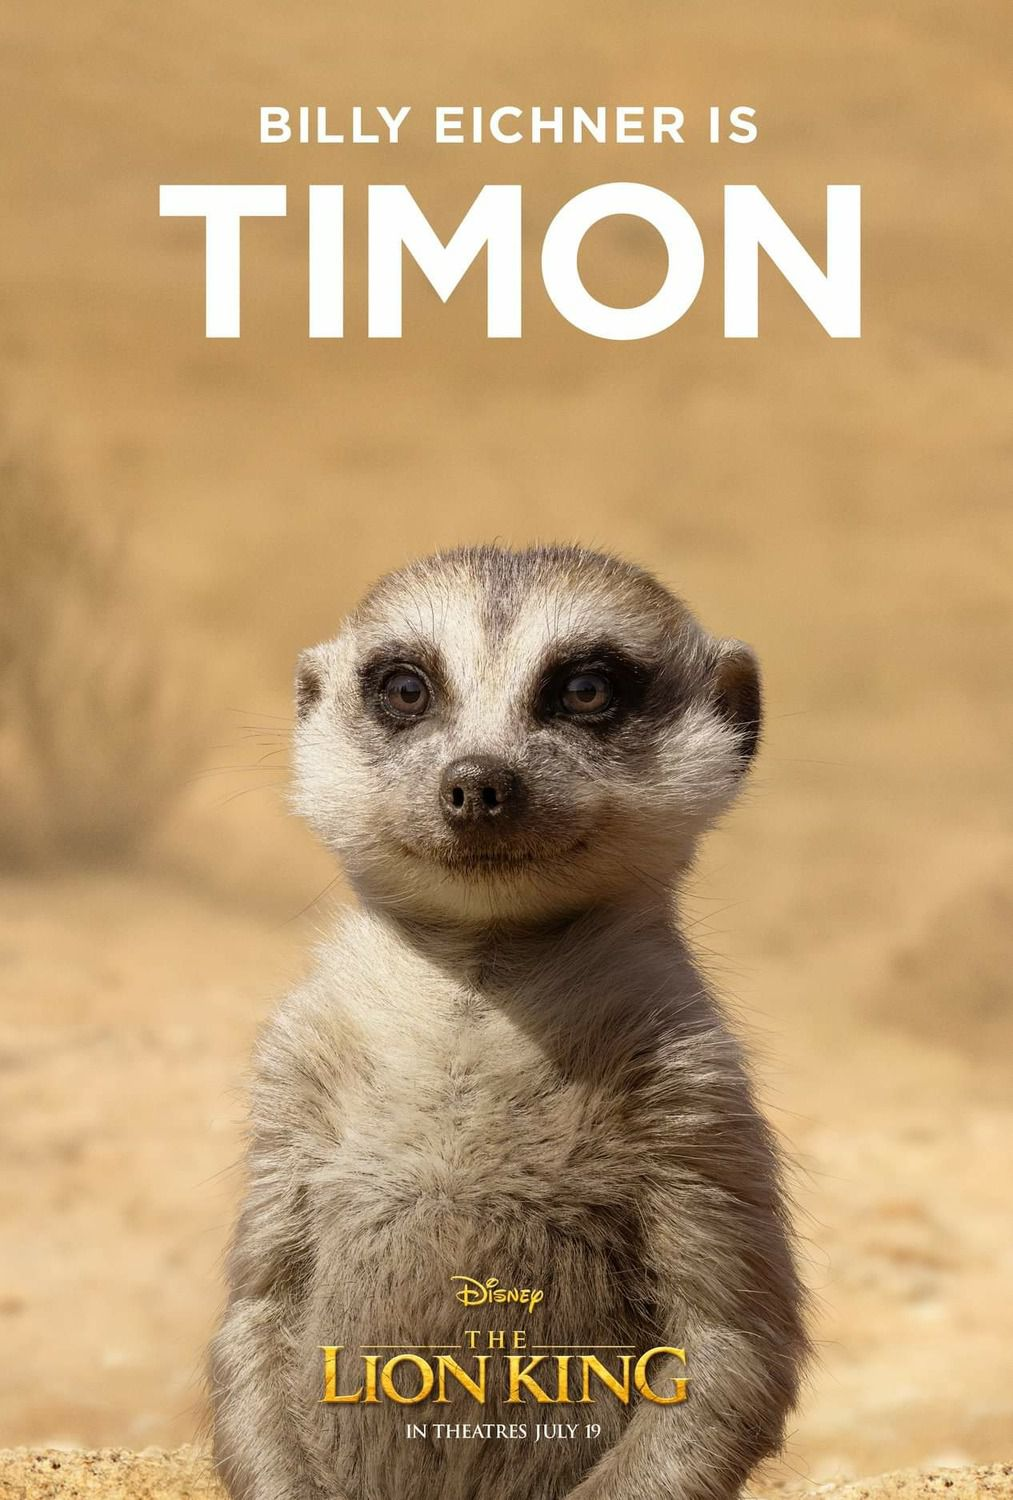 Billy Eichner is Timon